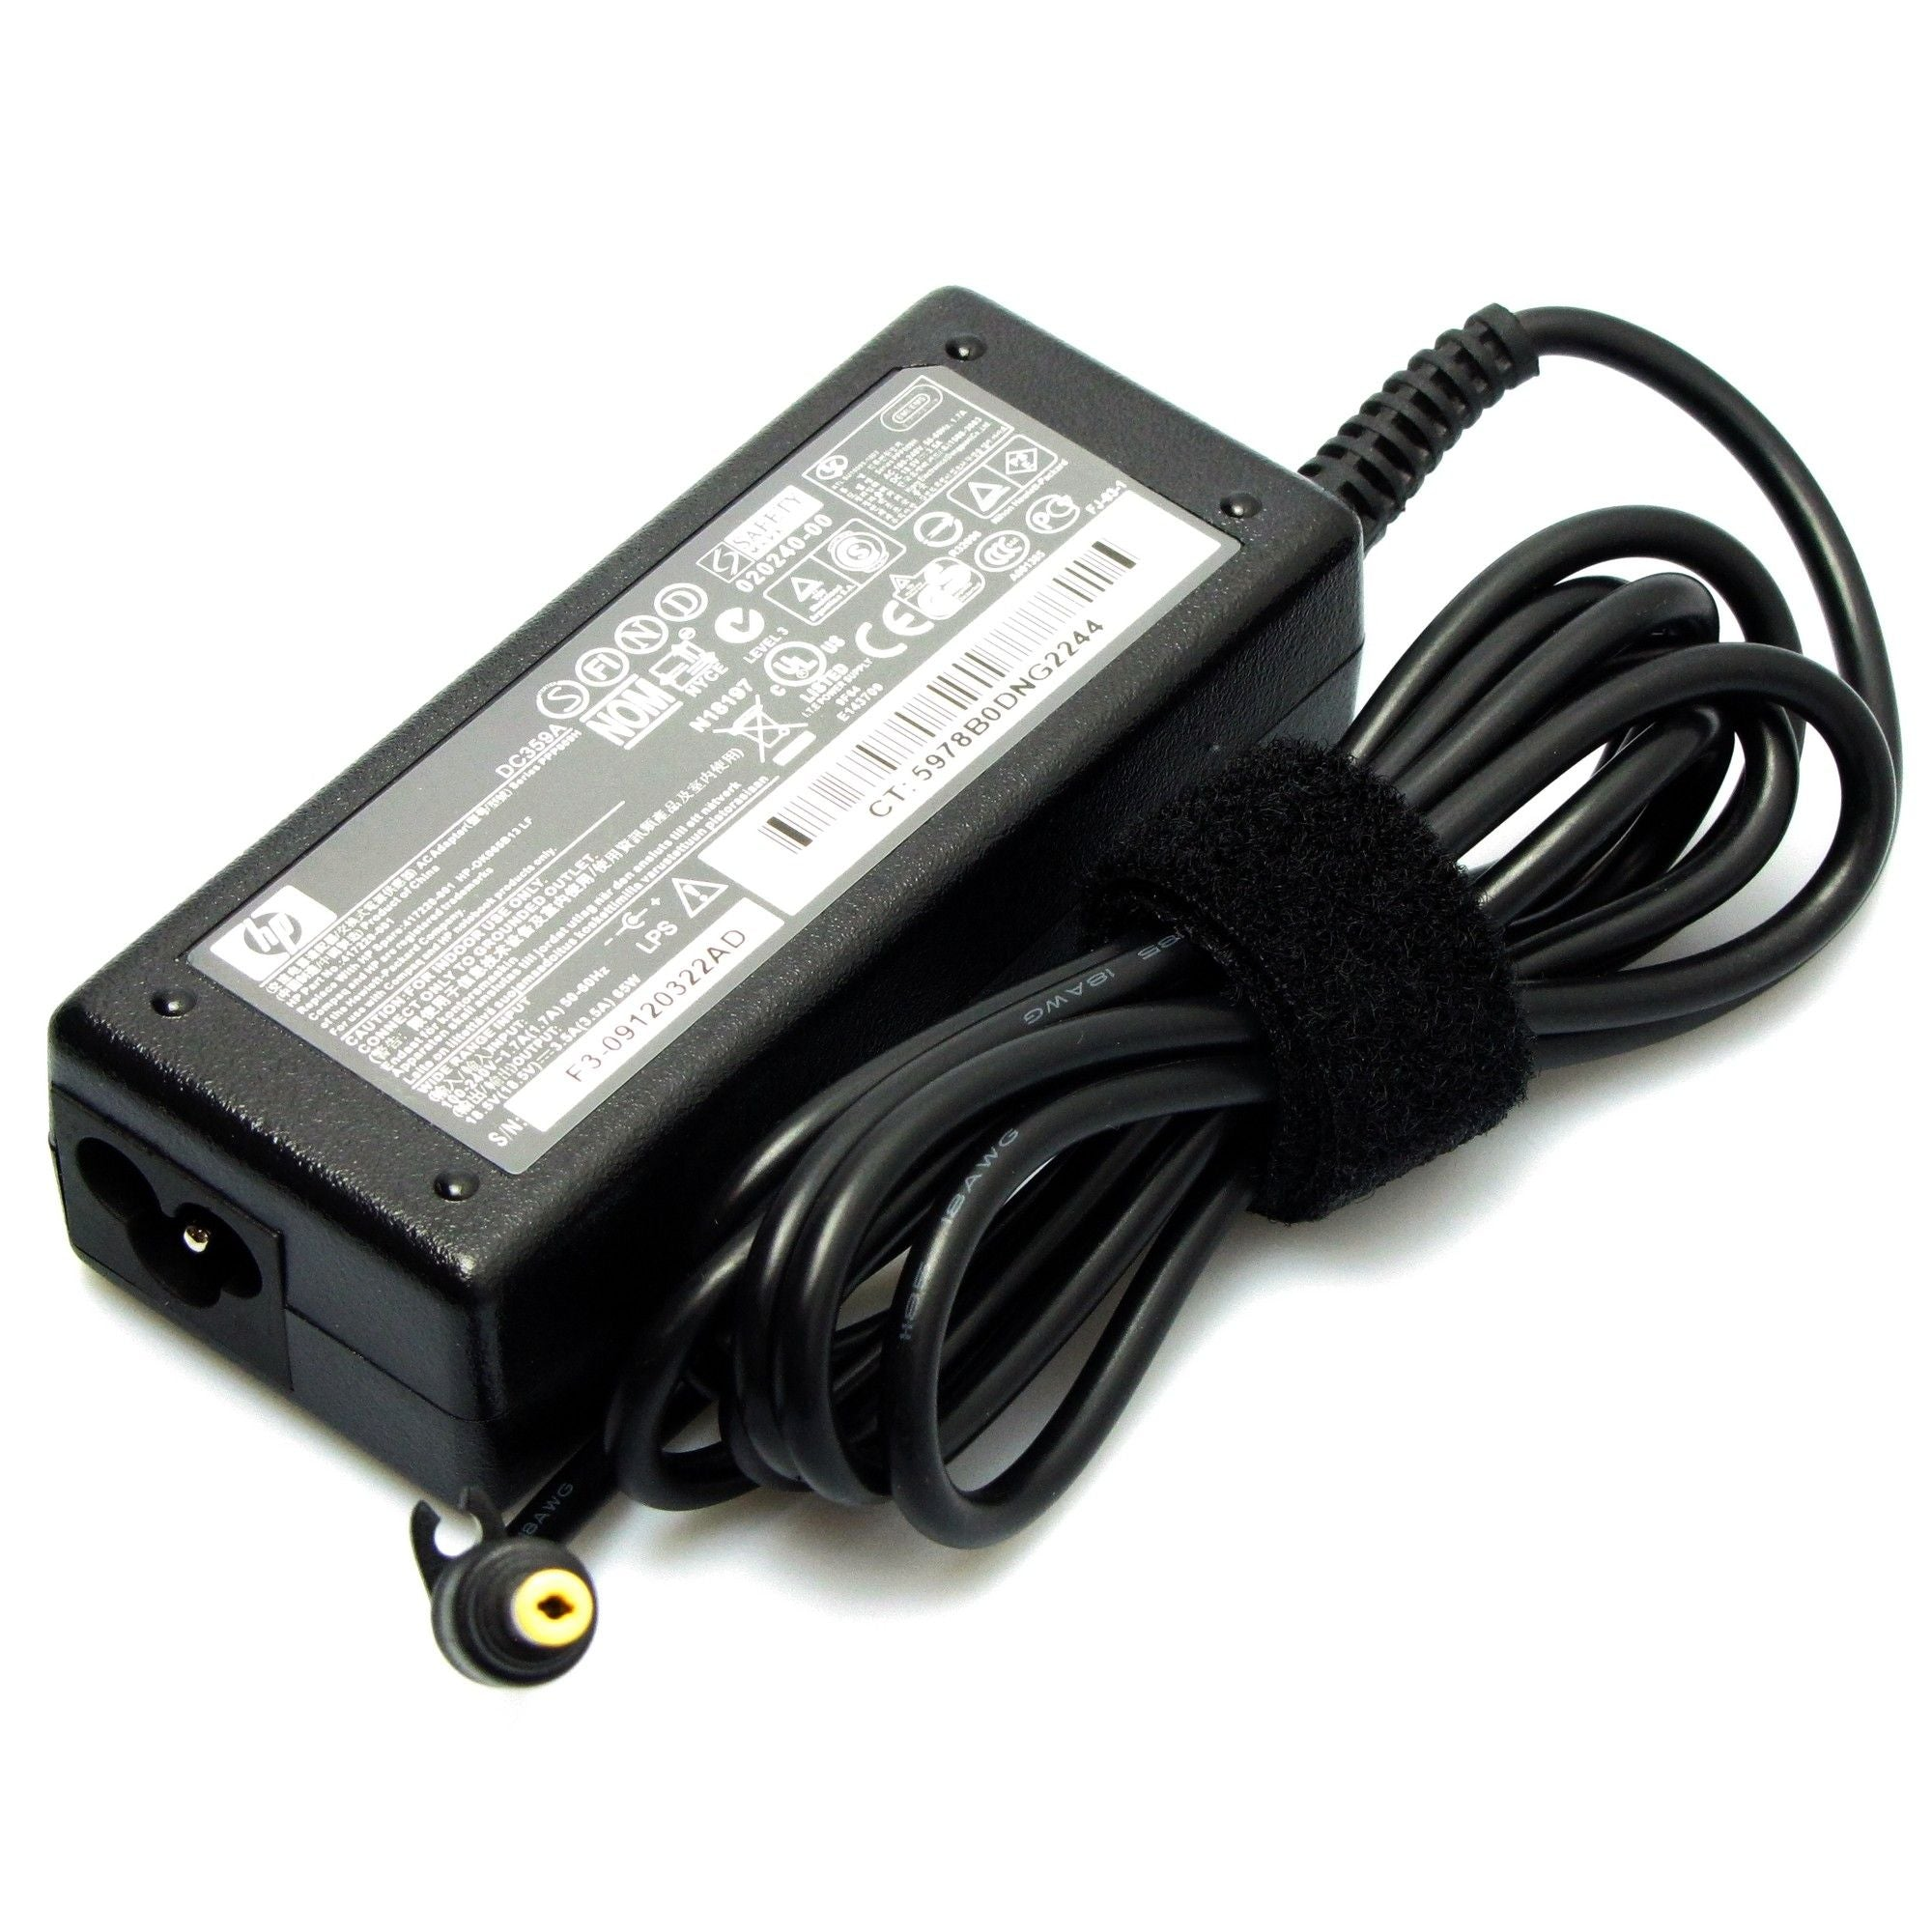 HP 65W 18.5V 3.5A 4.8*1.7mm Laptop AC Adapter Charger